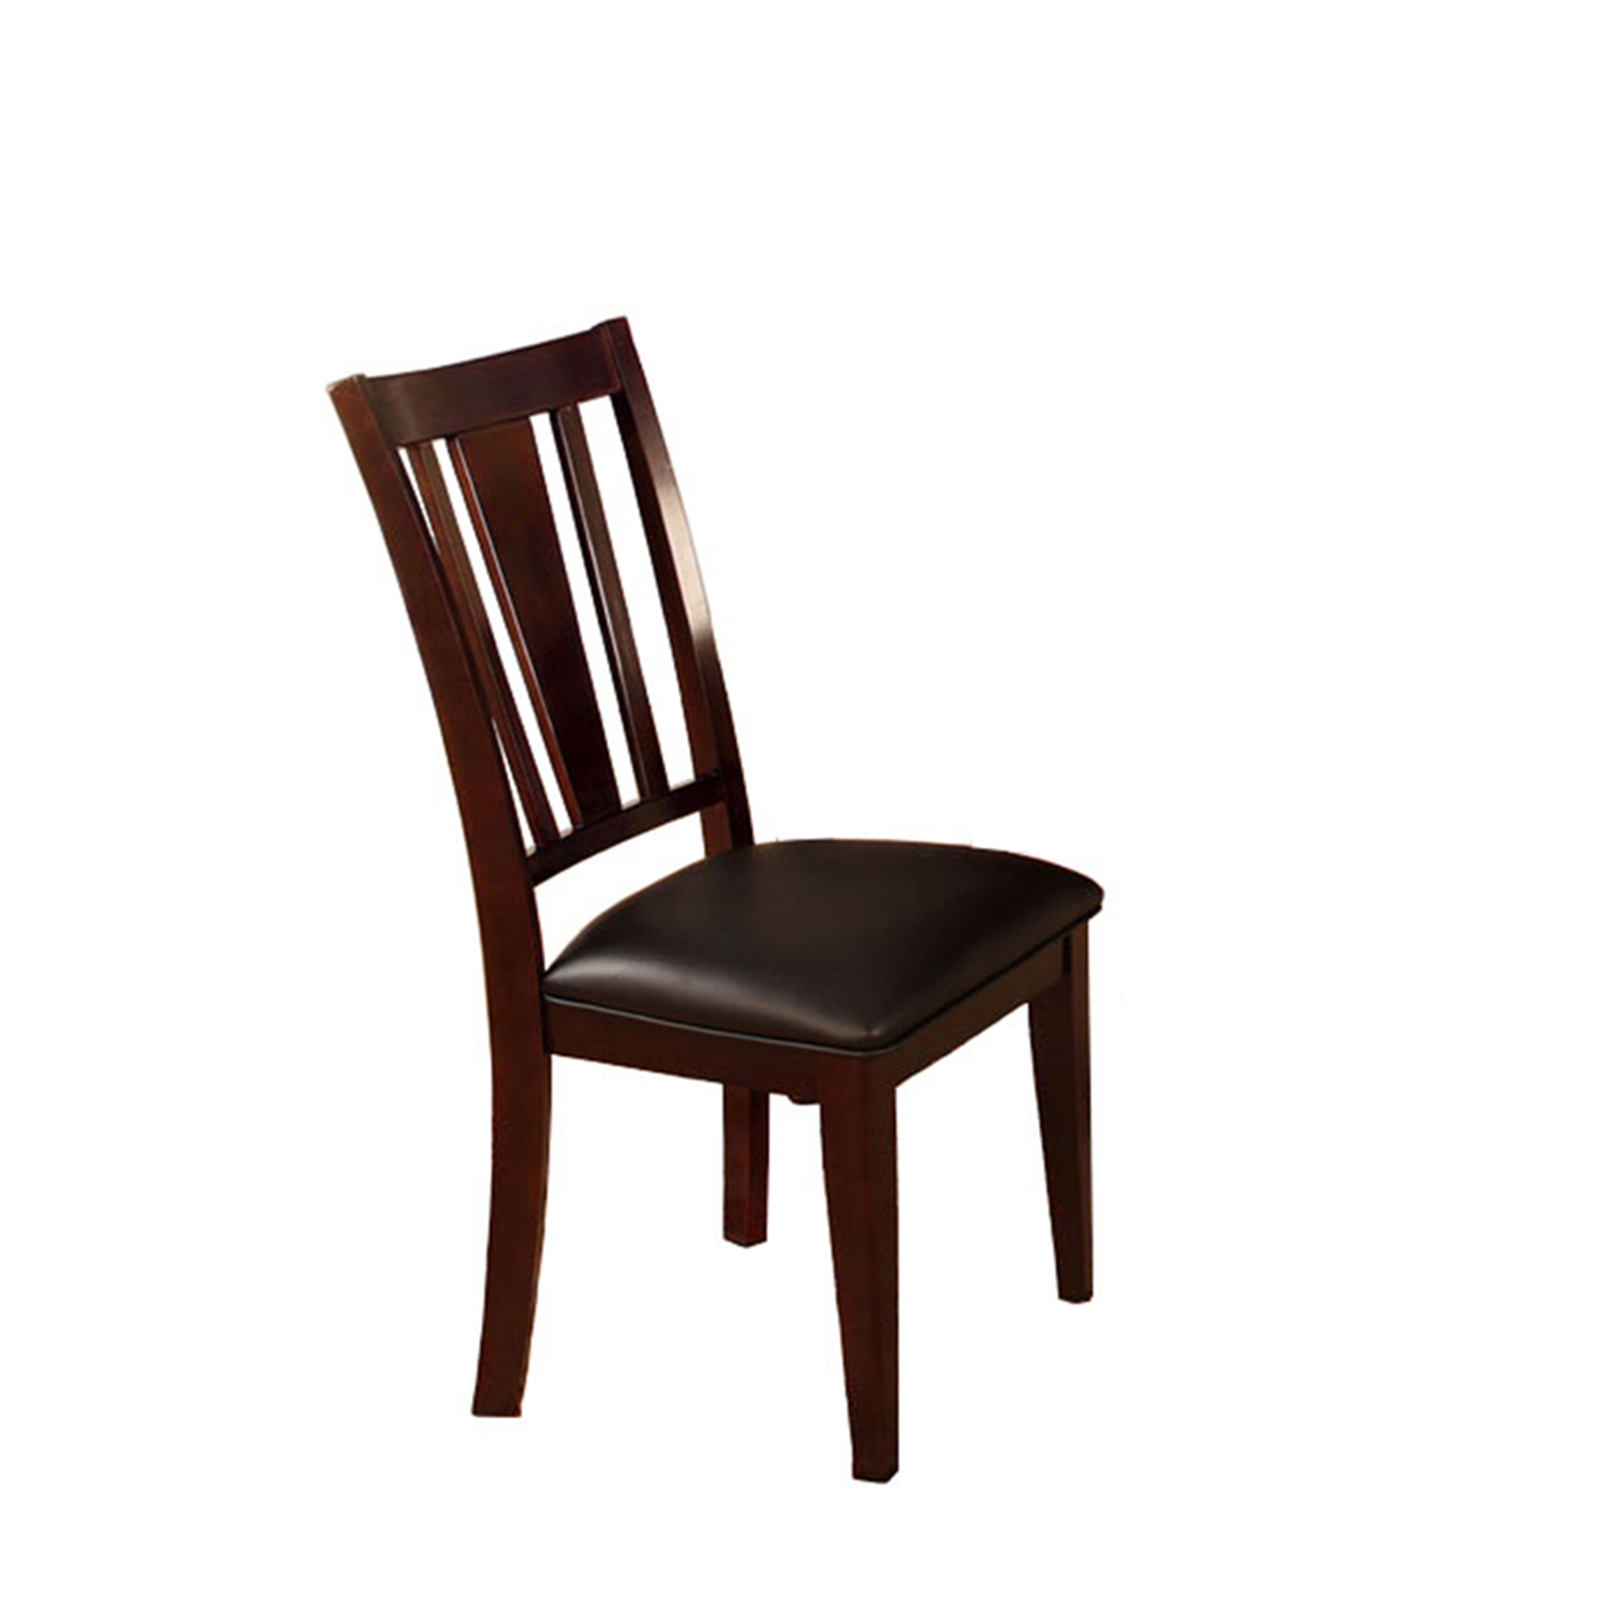 Kmart Dining Chairs Venetian Worldwide Bridgette Dining Chair Set Of 2